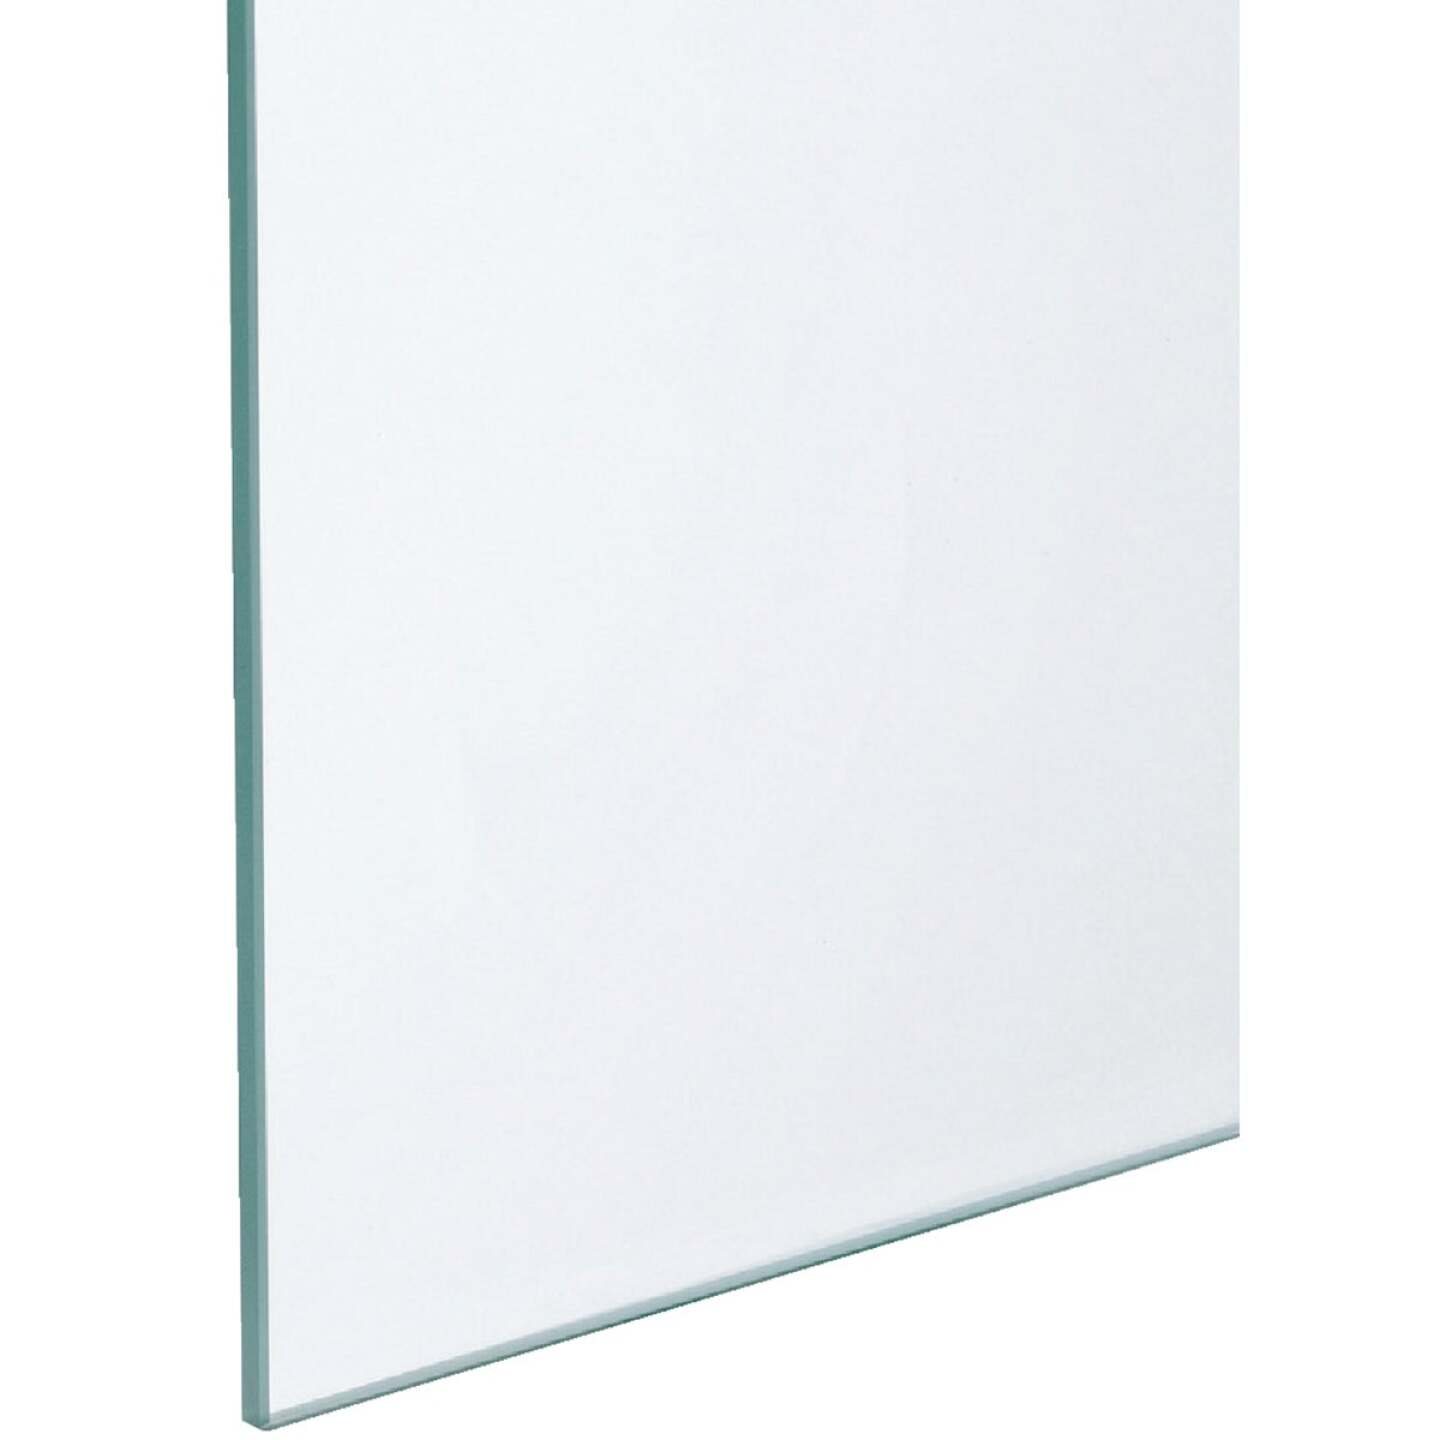 Guardian 36 In. x 36 In. Double Strength Window Glass Image 1